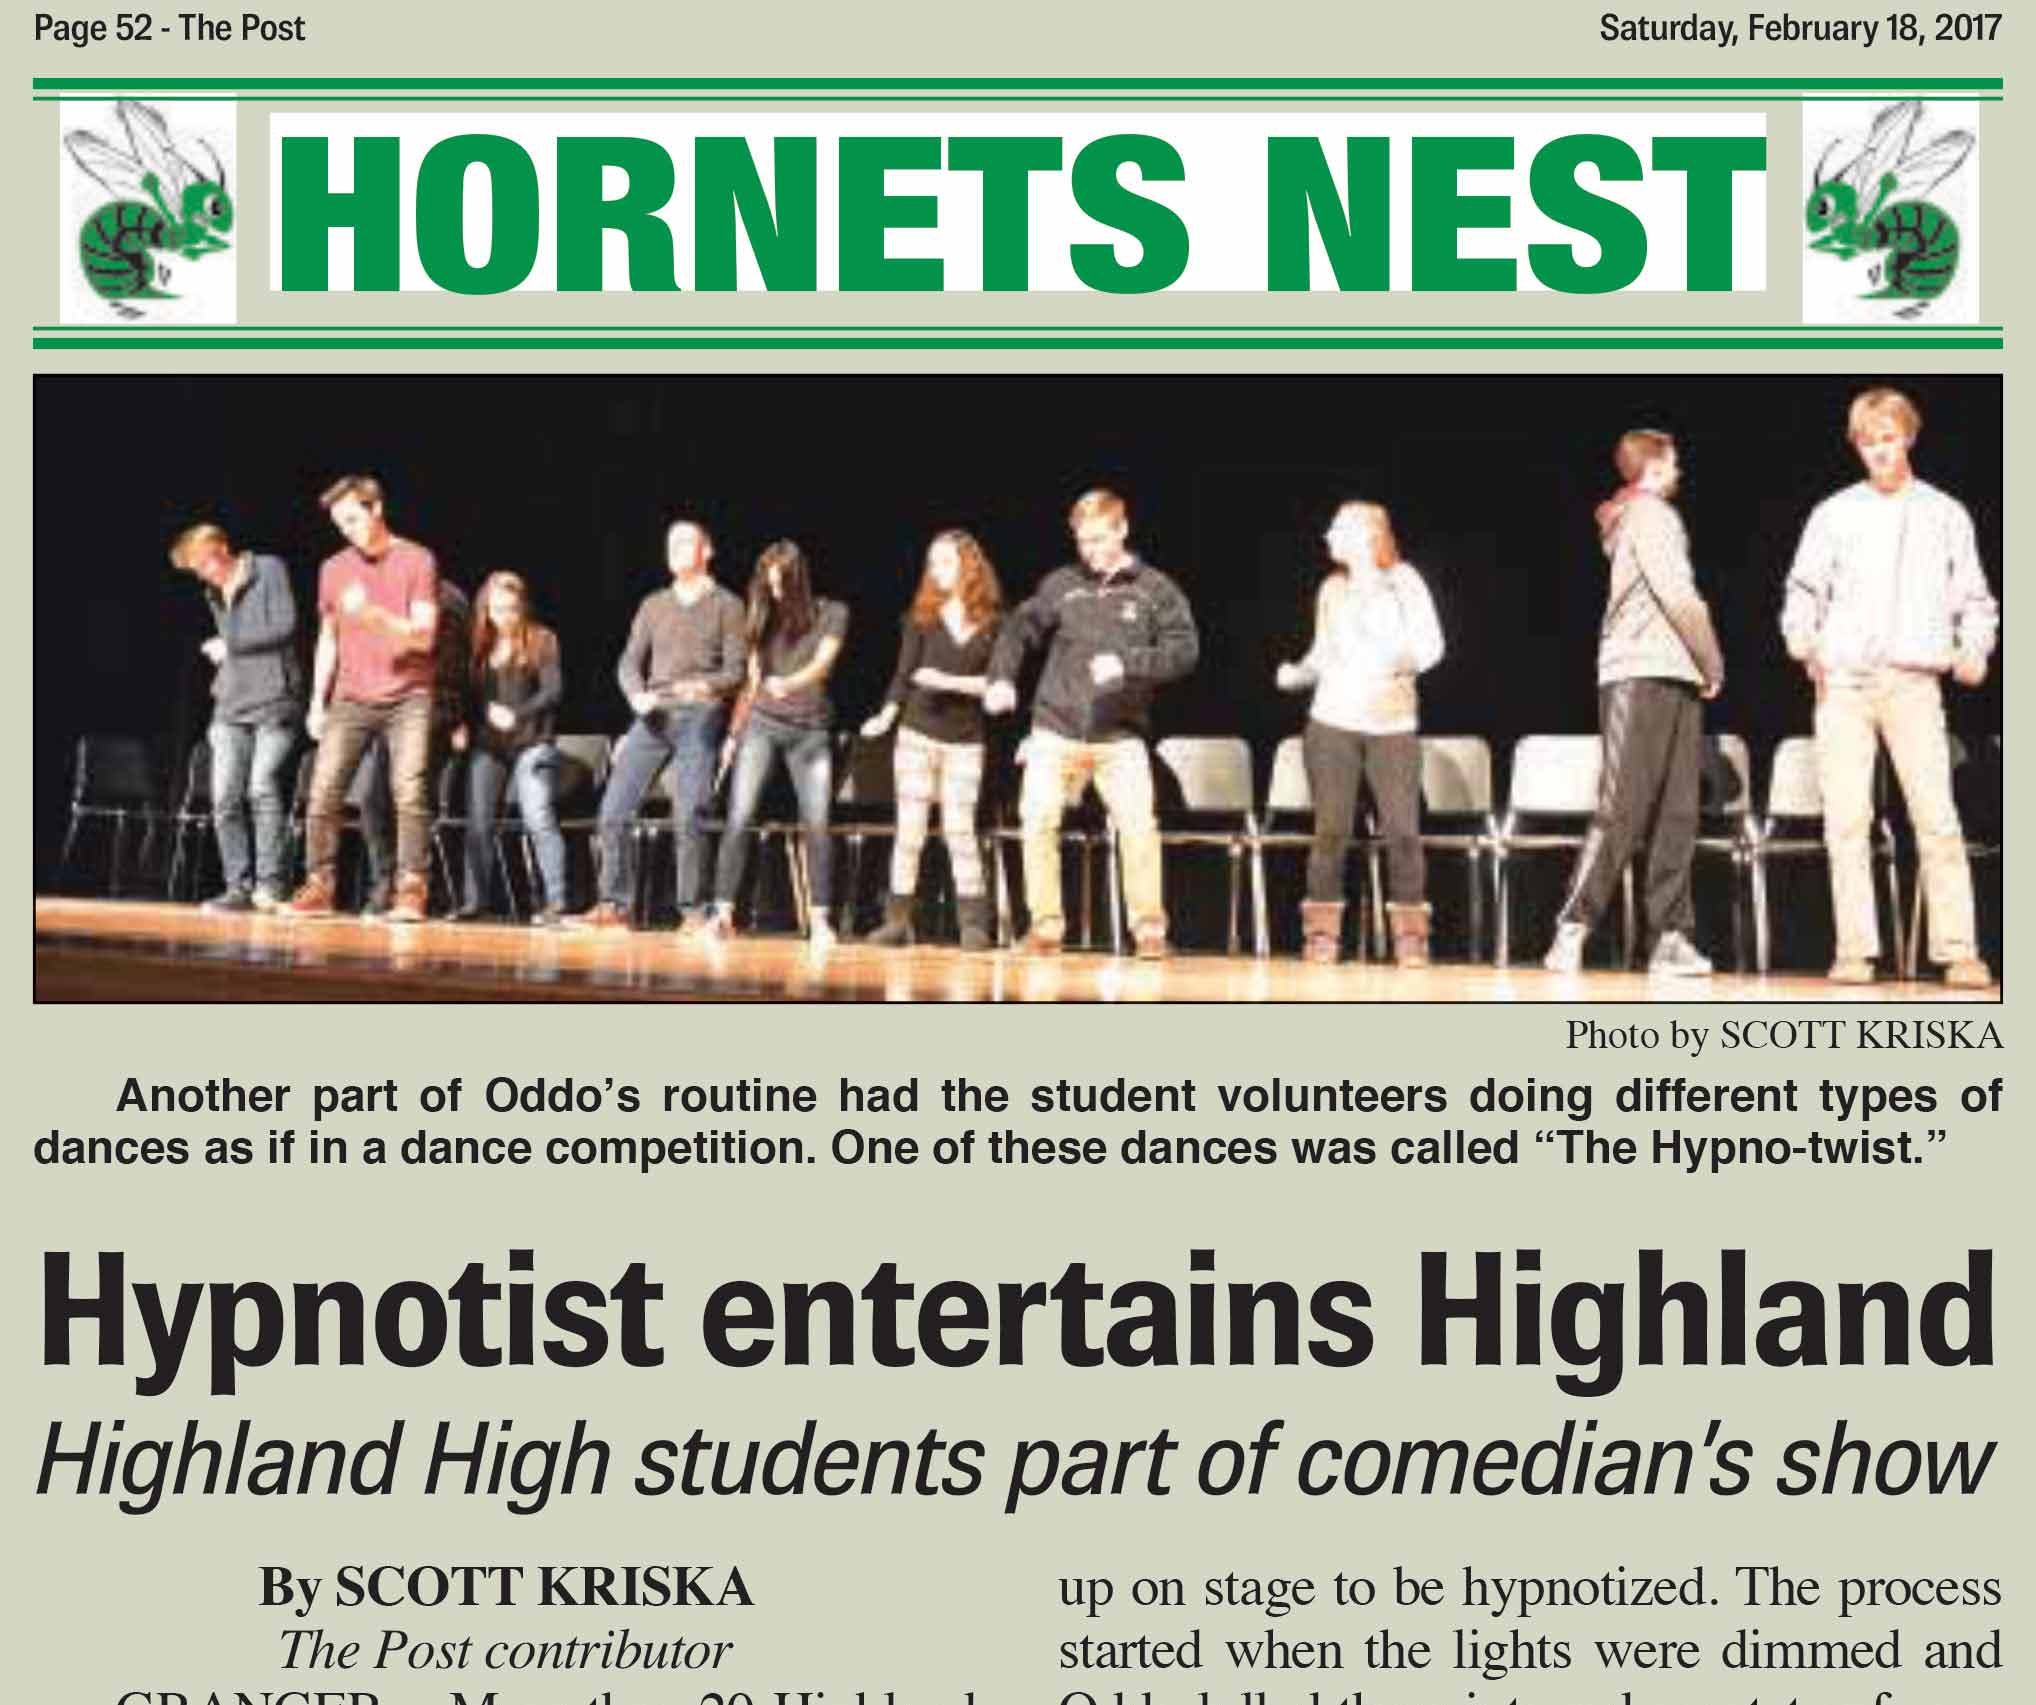 "More than 20 Highland High School students had the opportunity to experience the state of hypnosis at a special show at the school's auditorium Feb. 6. Comedic hypnotist Michael Oddo entertained students and community members with his ability to hypnotize others, which he demonstrated on student volunteers from the audience.  Molly Pellerite is a counselor and senior class advisor for Highland High School. She said all of the proceeds from this show go toward the class of 2017 and wanted to initiate something that would be fun and healthy for the community.  ""Our class officers did a lot of research to find a fundraiser that would be fun and interesting and would raise money for senior prom,"" she explained.  At the beginning of the show, Oddo explained what hypnosis is in contrast to some of the misconceptions people have about hypnosis.  ""Hypnosis is a state of concentration,"" he said. ""If you're able to concentrate, you're able to be hypnotized.""  Several students volunteered to come up on stage to be hypnotized. The process started when the lights were dimmed and Oddo lulled them into a deep state of concentration on his voice and his instructions. While they were hypnotized, the volunteers acted out several different humorous scenarios, such as playing in a band, flying on an airplane, lounging around on a beach and competing in a dance competition. Oddo concluded the show by presenting the student volunteers with some motivations to change something in their life that they want to change before luring them out of their hypnotized state. Not all of the volunteers on stage were successfully hypnotized throughout the course of the show. A few of the students were unable to stay hypnotized and were led off stage as the show continued.  Pellerite said while she hopes to hold more fundraisers for senior prom throughout the rest of the school year, she is glad this fundraising effort was as successful as it was.  ""We just wanted to get one successful one (fundraiser) under our belt and move on from there,"" she said.  Oddo became a certified hypnotherapist through the National Guild of Hypnotists in 2001. After attending a workshop on stage hypnosis, he has performed in shows across the country with his comedic hypnosis. More information on Michael Oddo can be found online at michaeloddo.com."